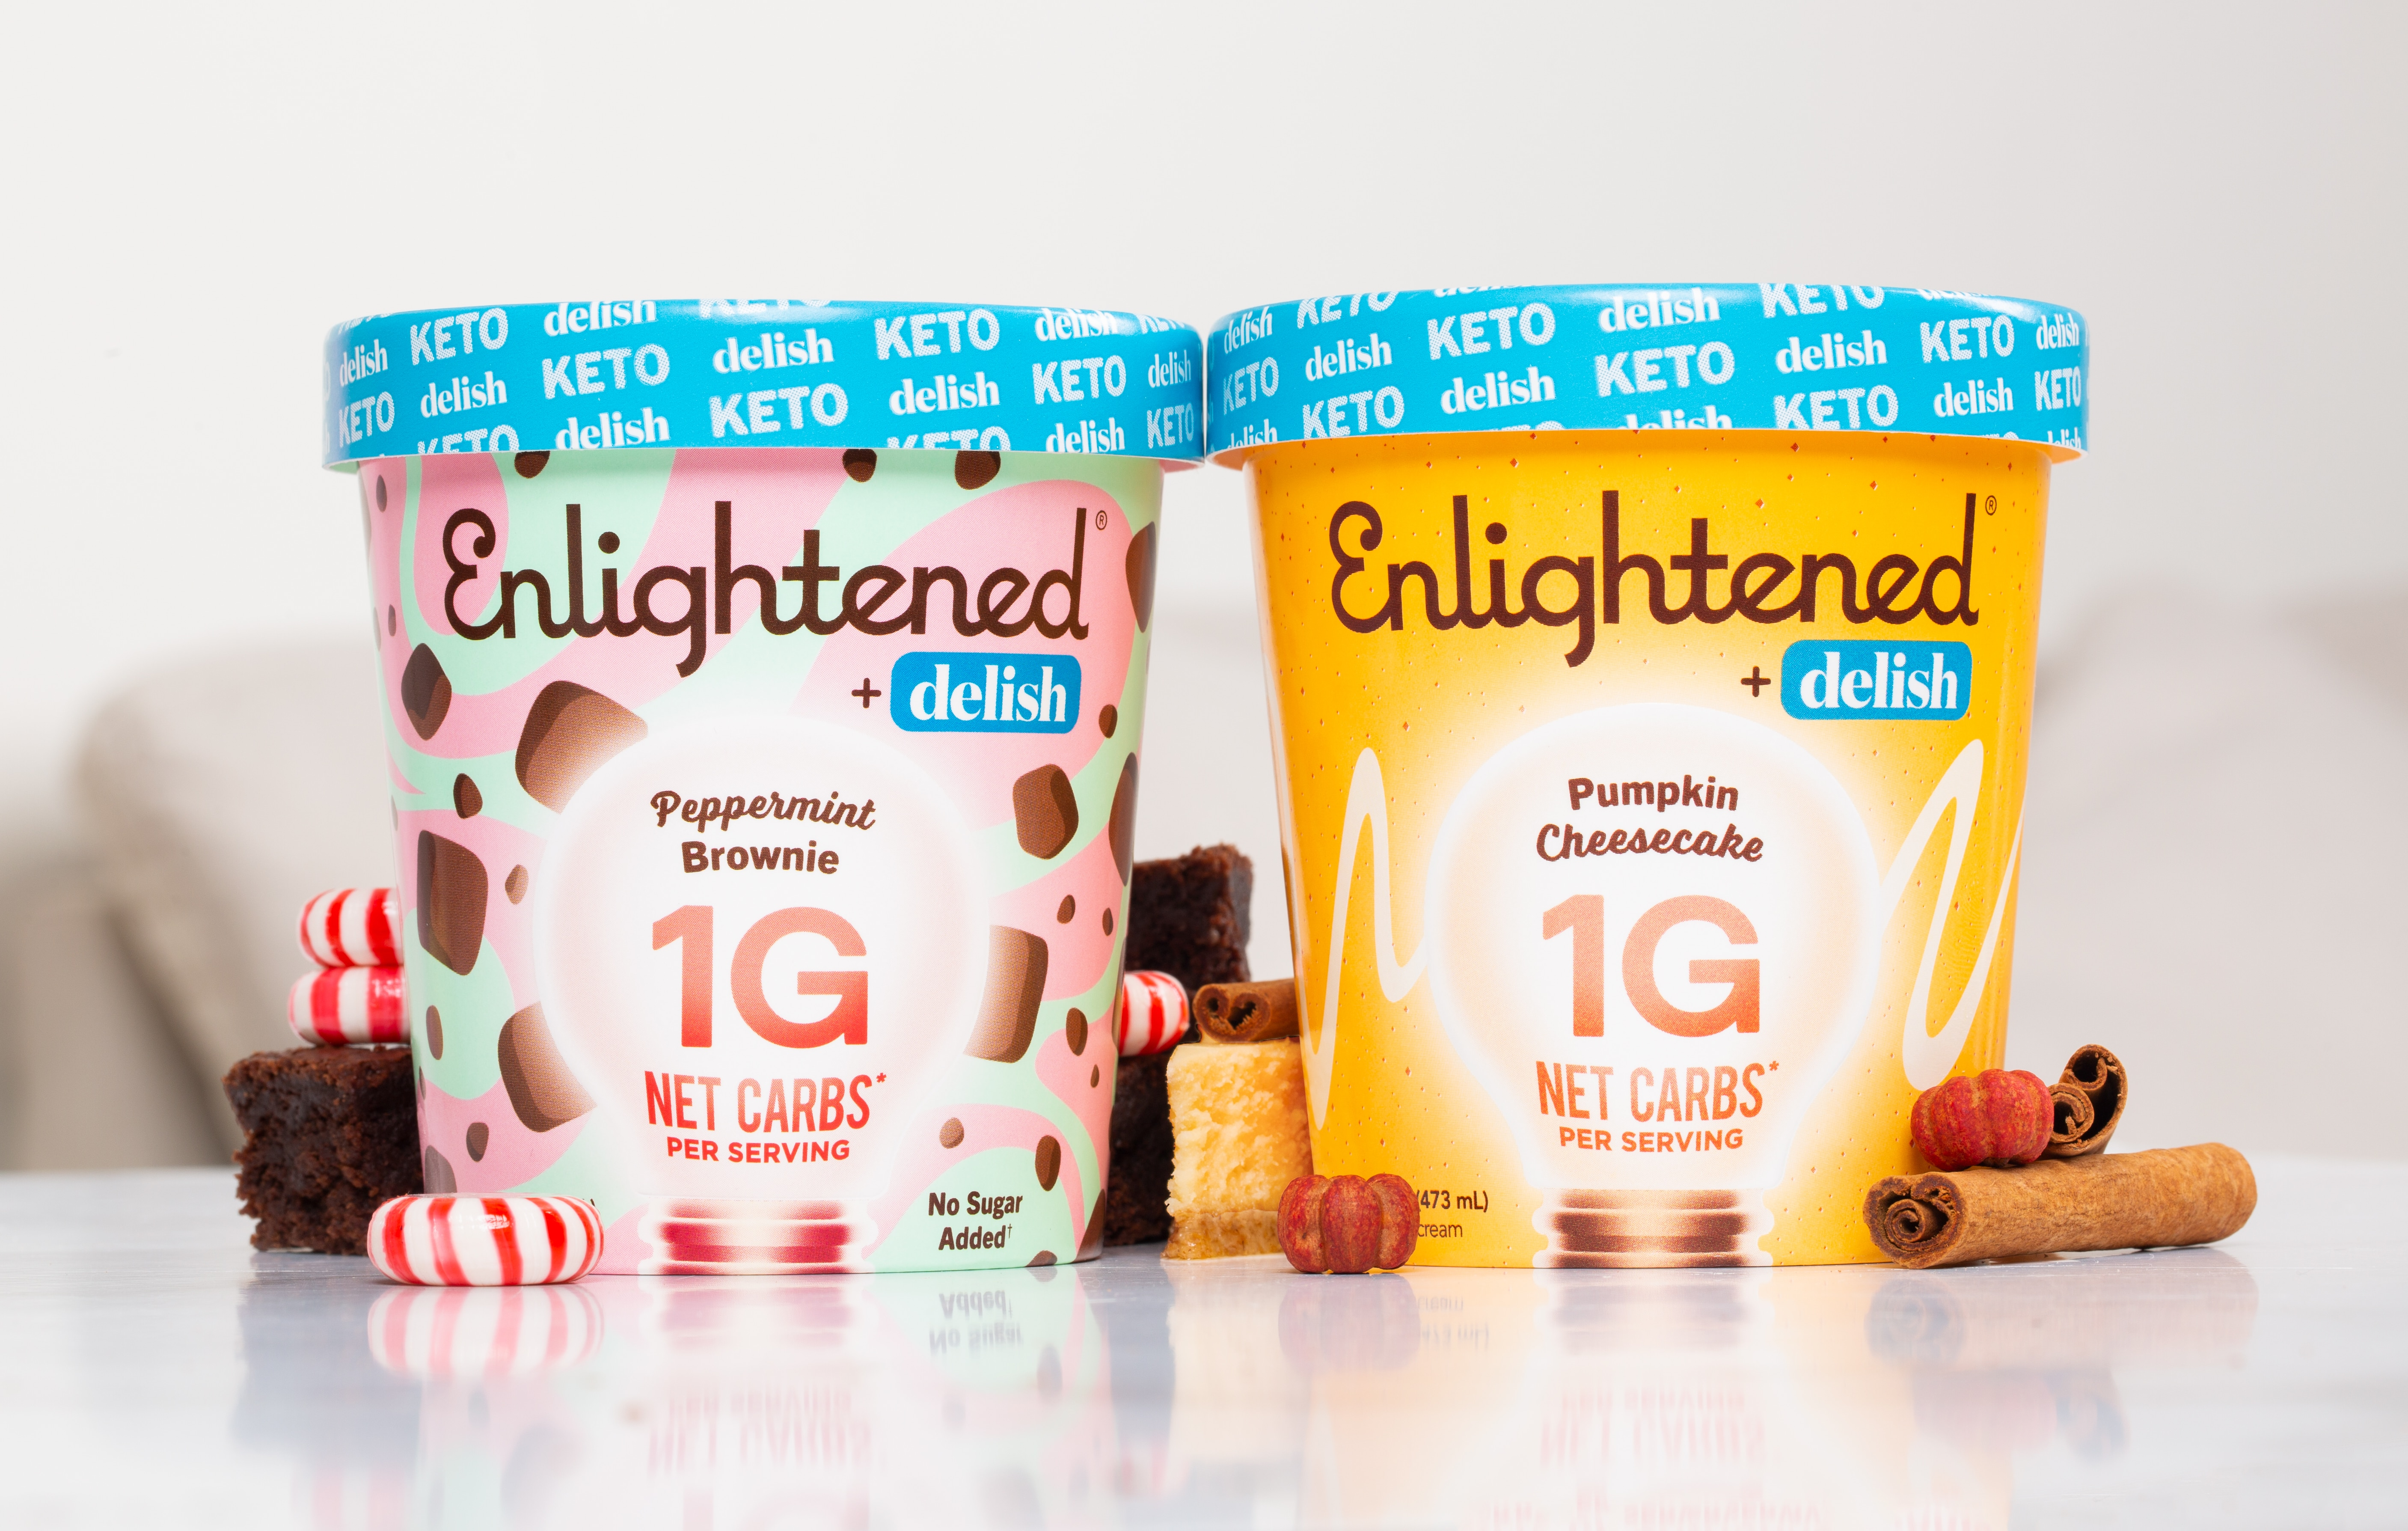 Enlightened Expands Hearst Magazines Ice Cream Licensing Partnership with a Delish Fall Collection